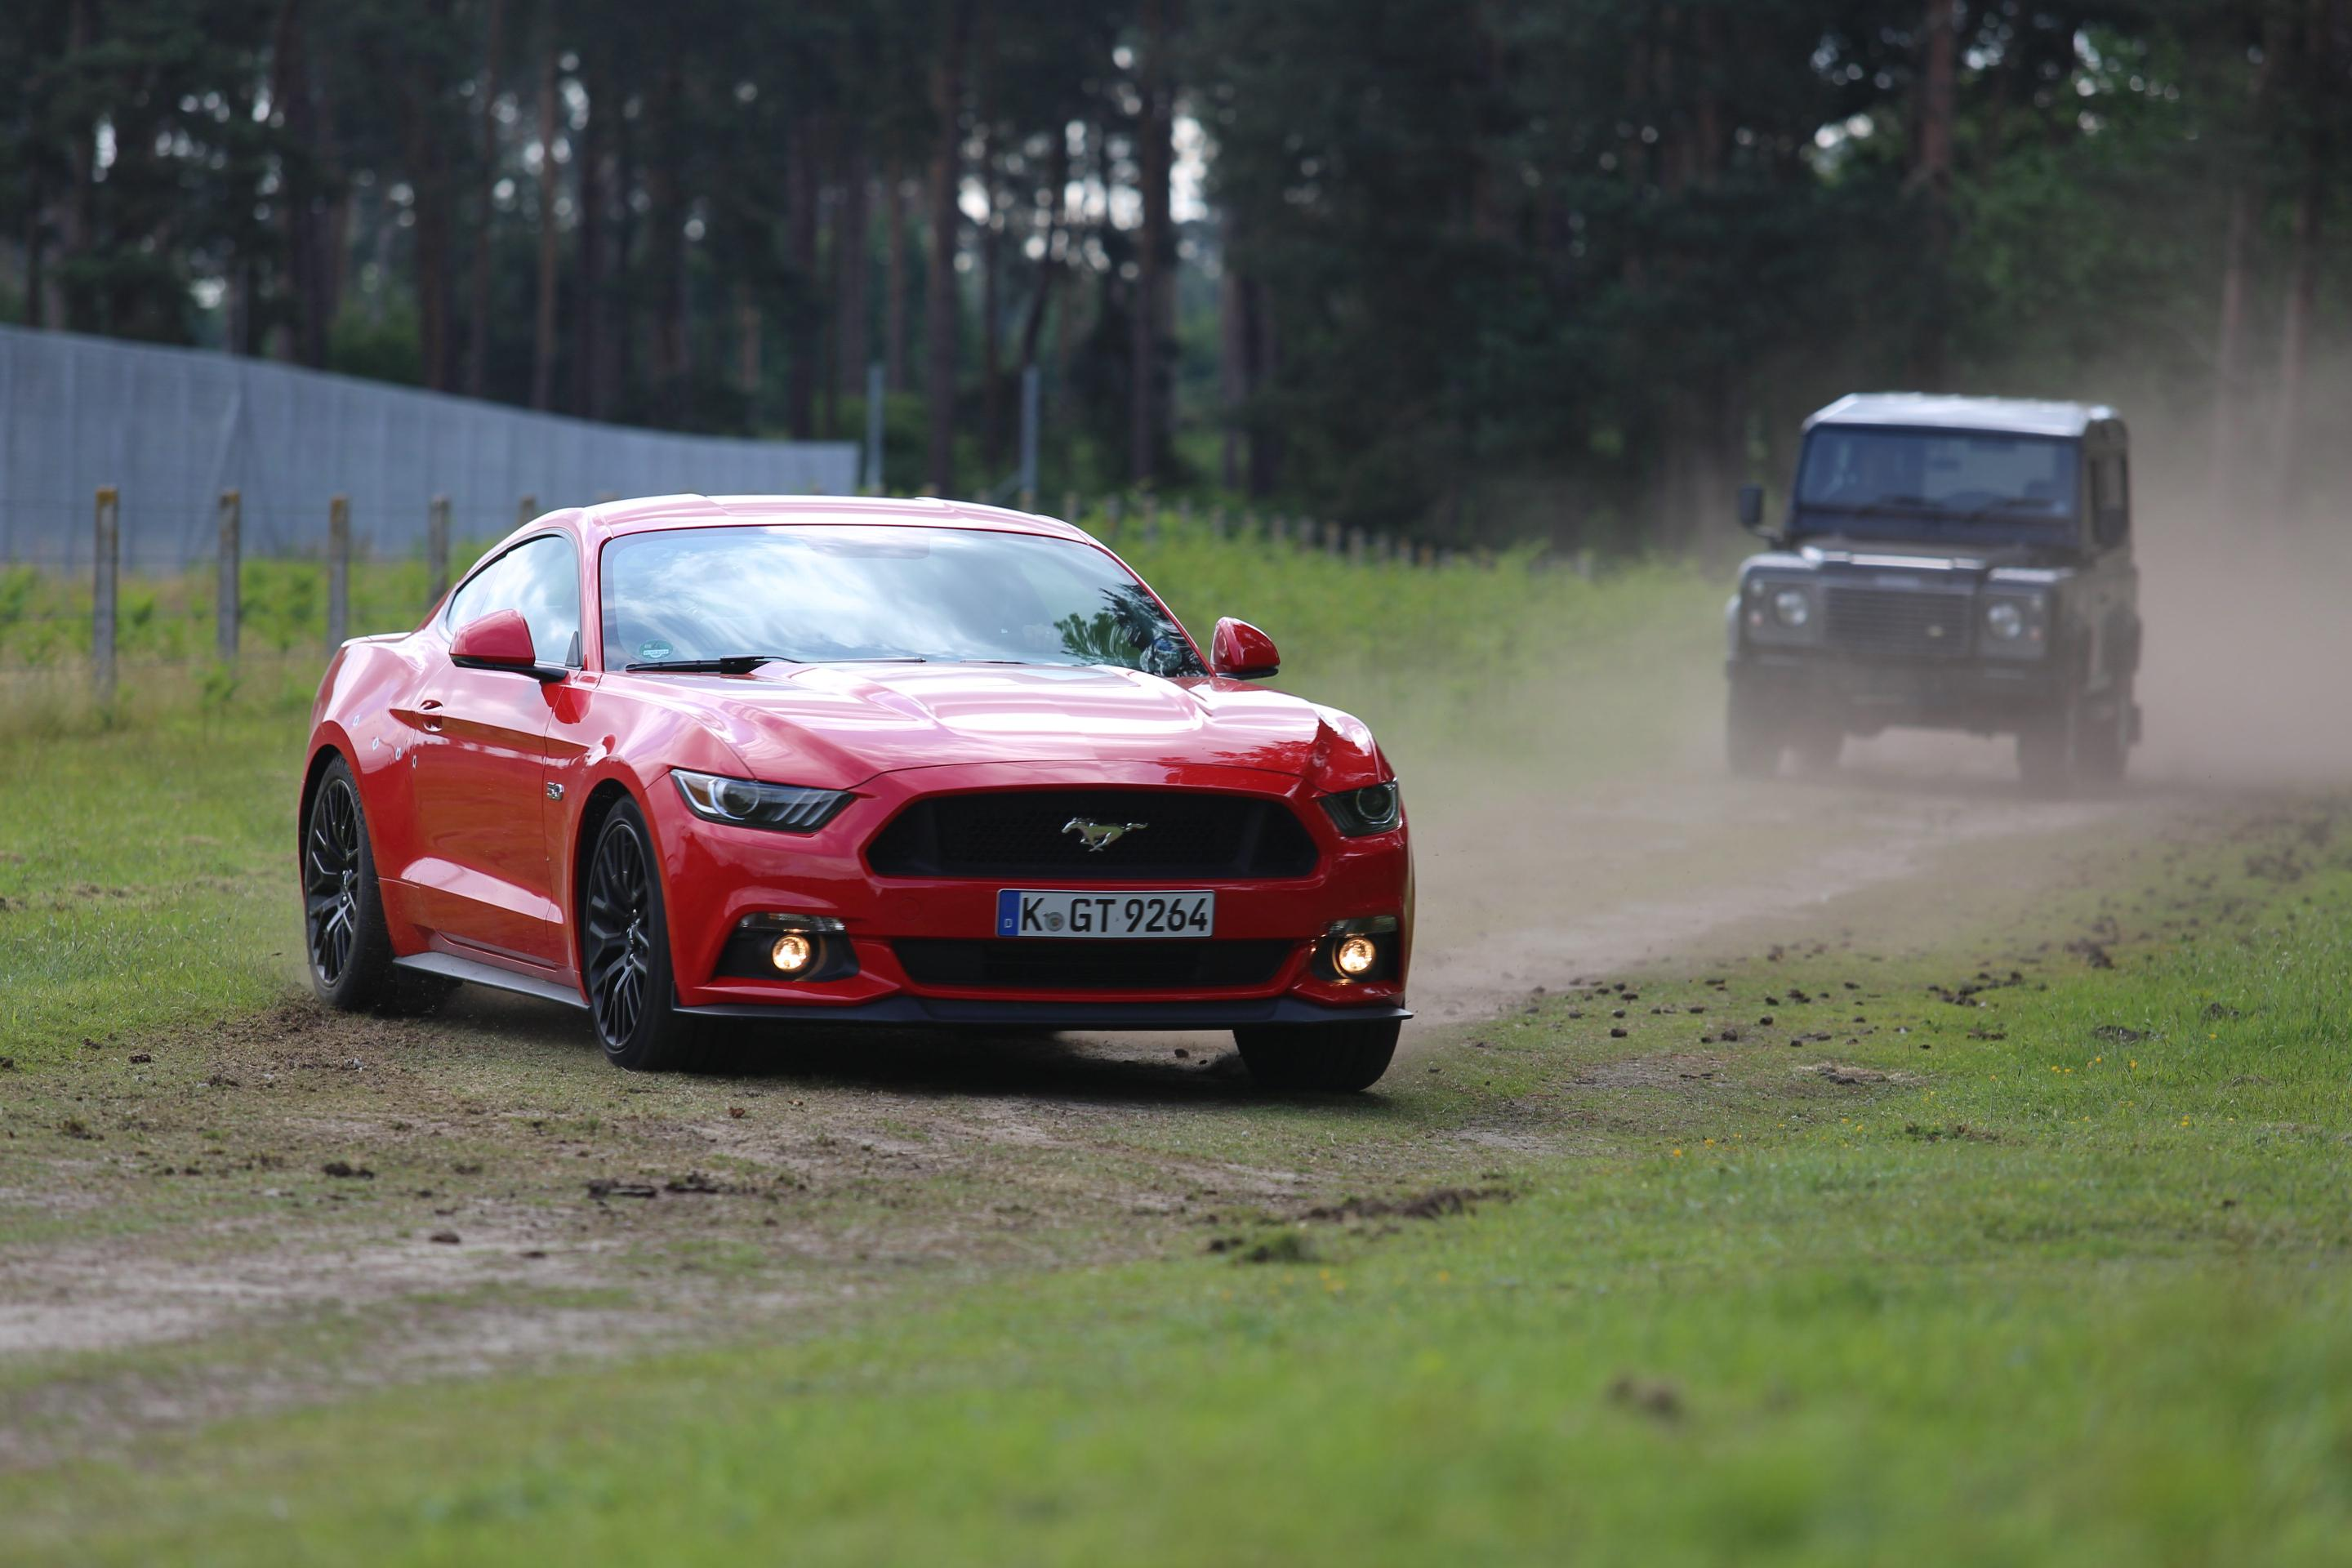 Former Stig Says Ford Mustang Makes Best Stunt Car